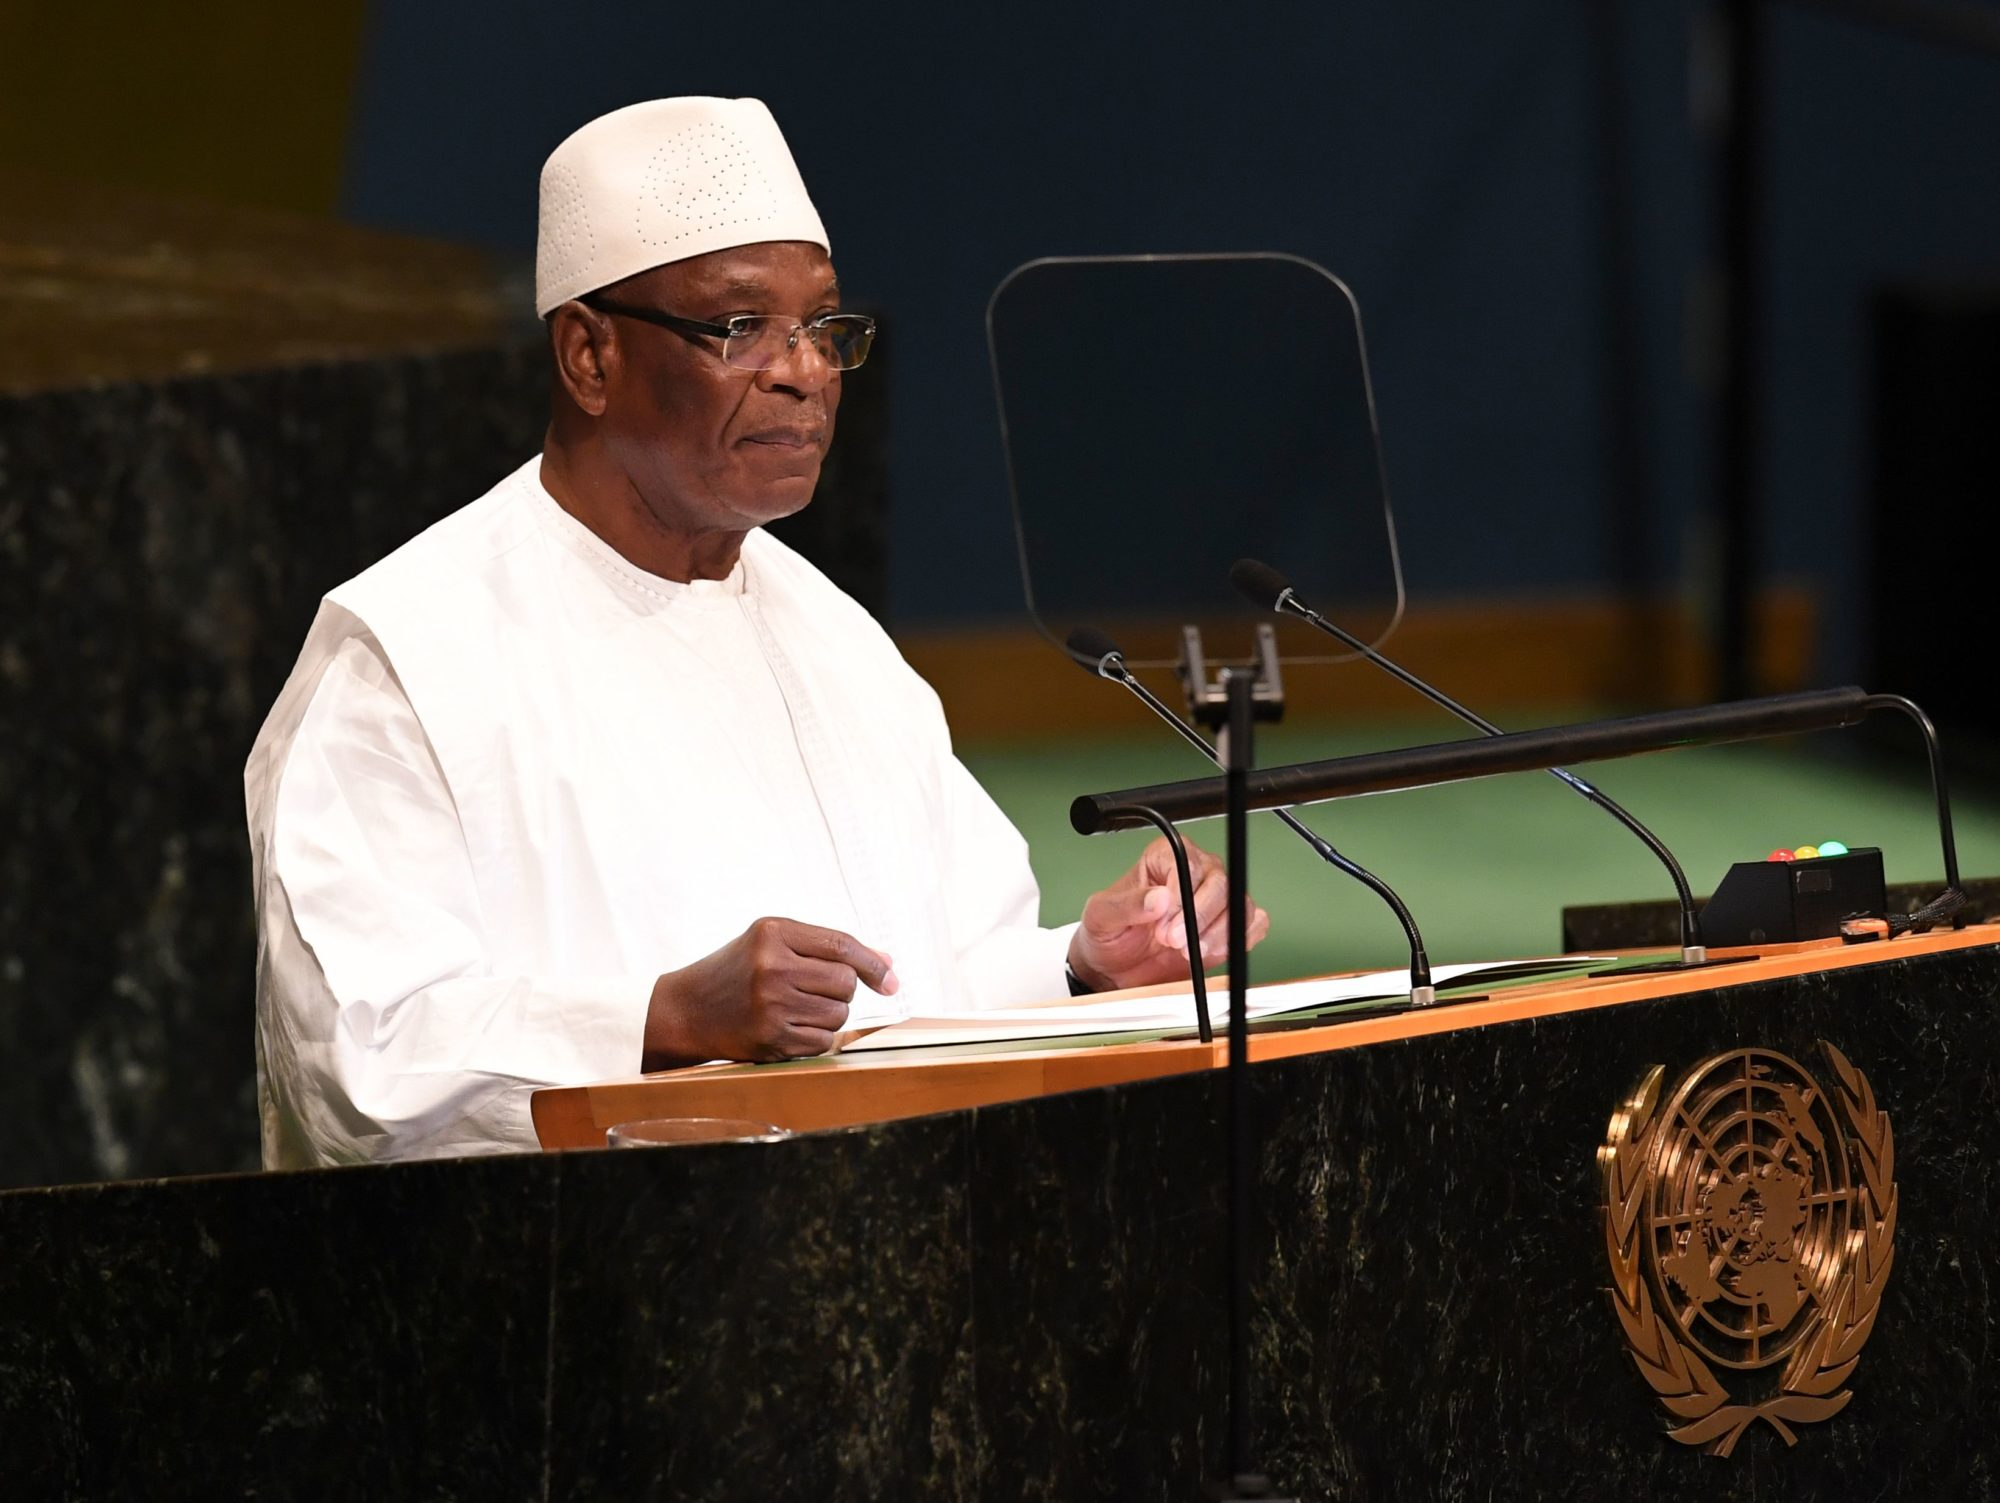 President of Mali, Ibrahim Boubacar Keita, addresses the Nelson Mandela Peace Summit September 24, 2018, one a day before the start of the General Debate of the 73rd session of the General Assembly at the United Nations in New York. (DON EMMERT/AFP/Getty Images)